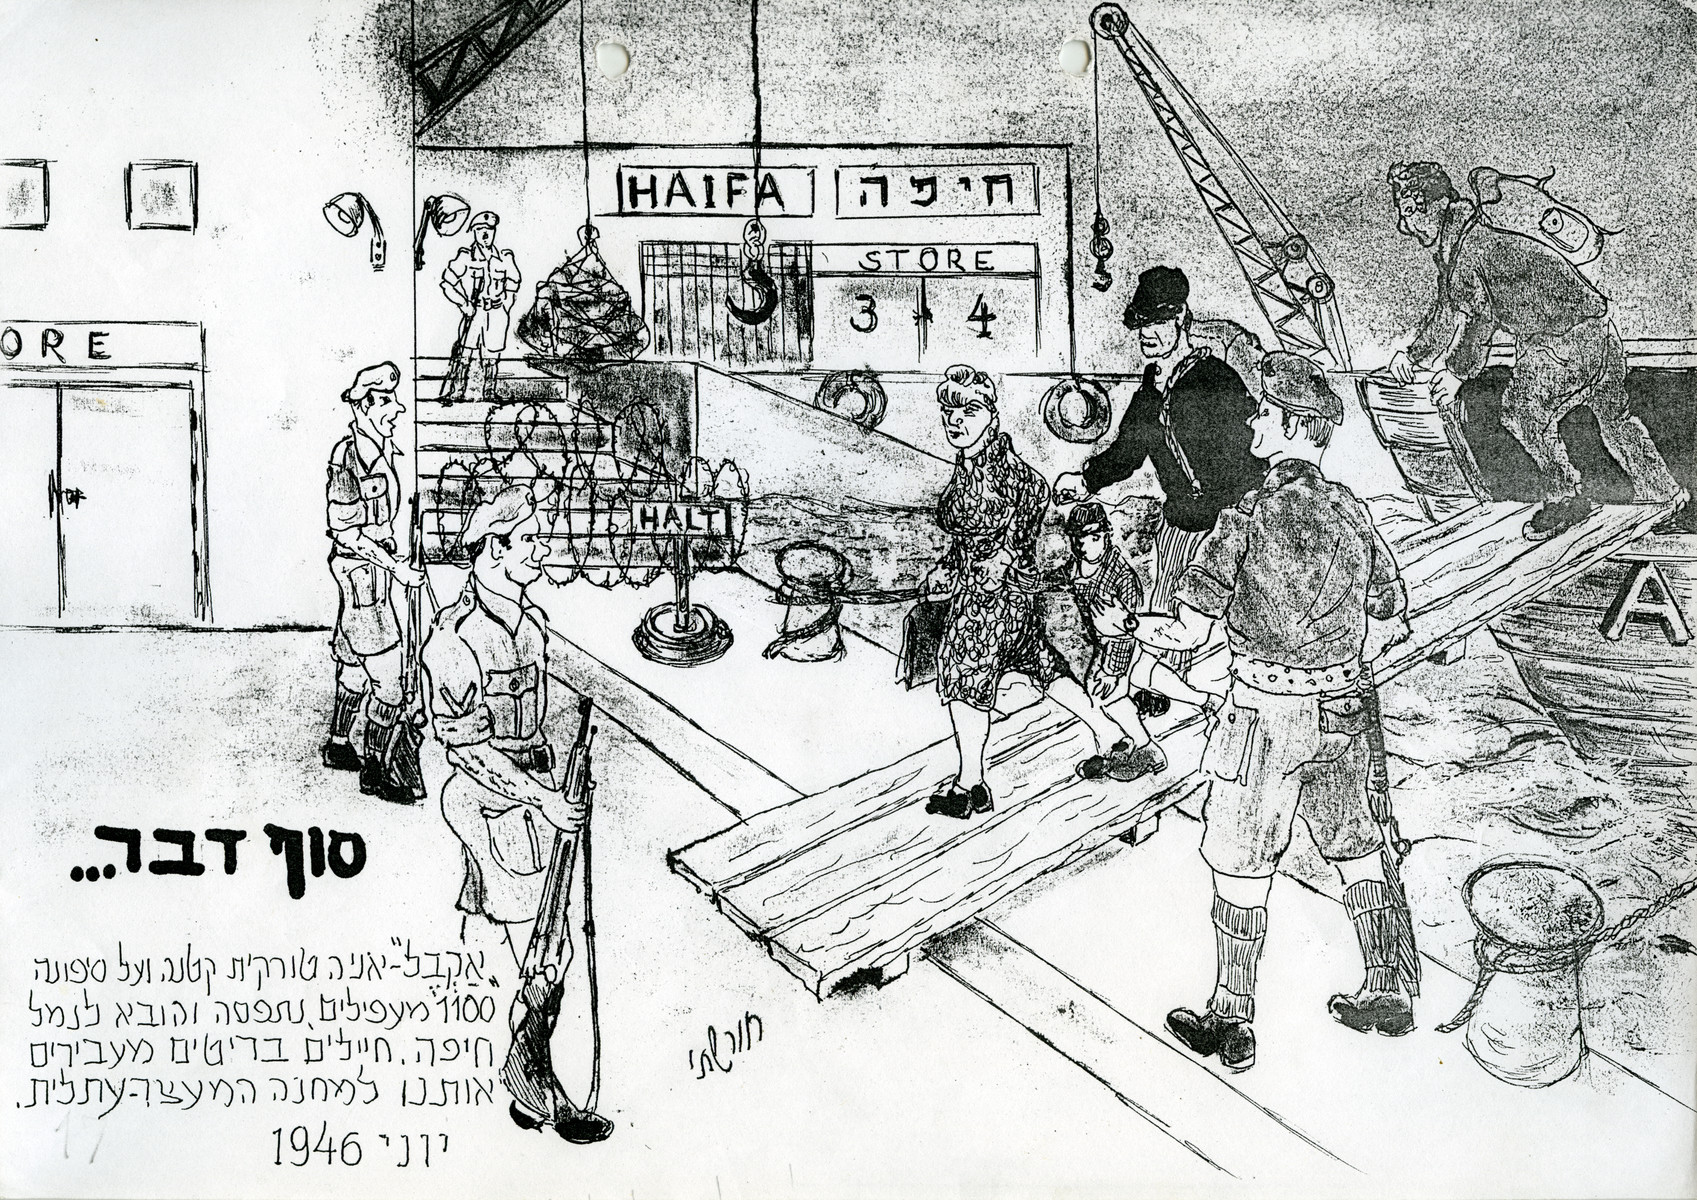 Page of a pictoral memoir drawn by the donor documenting his experiences after the Holocaust.  The drawing depicts armed British soldiers greeting new immigrants upon their arrival in Haifa.  From the port the immigrants were taken to the Athlit detention camp.  [Chronologically this drawing precedes 55102.]